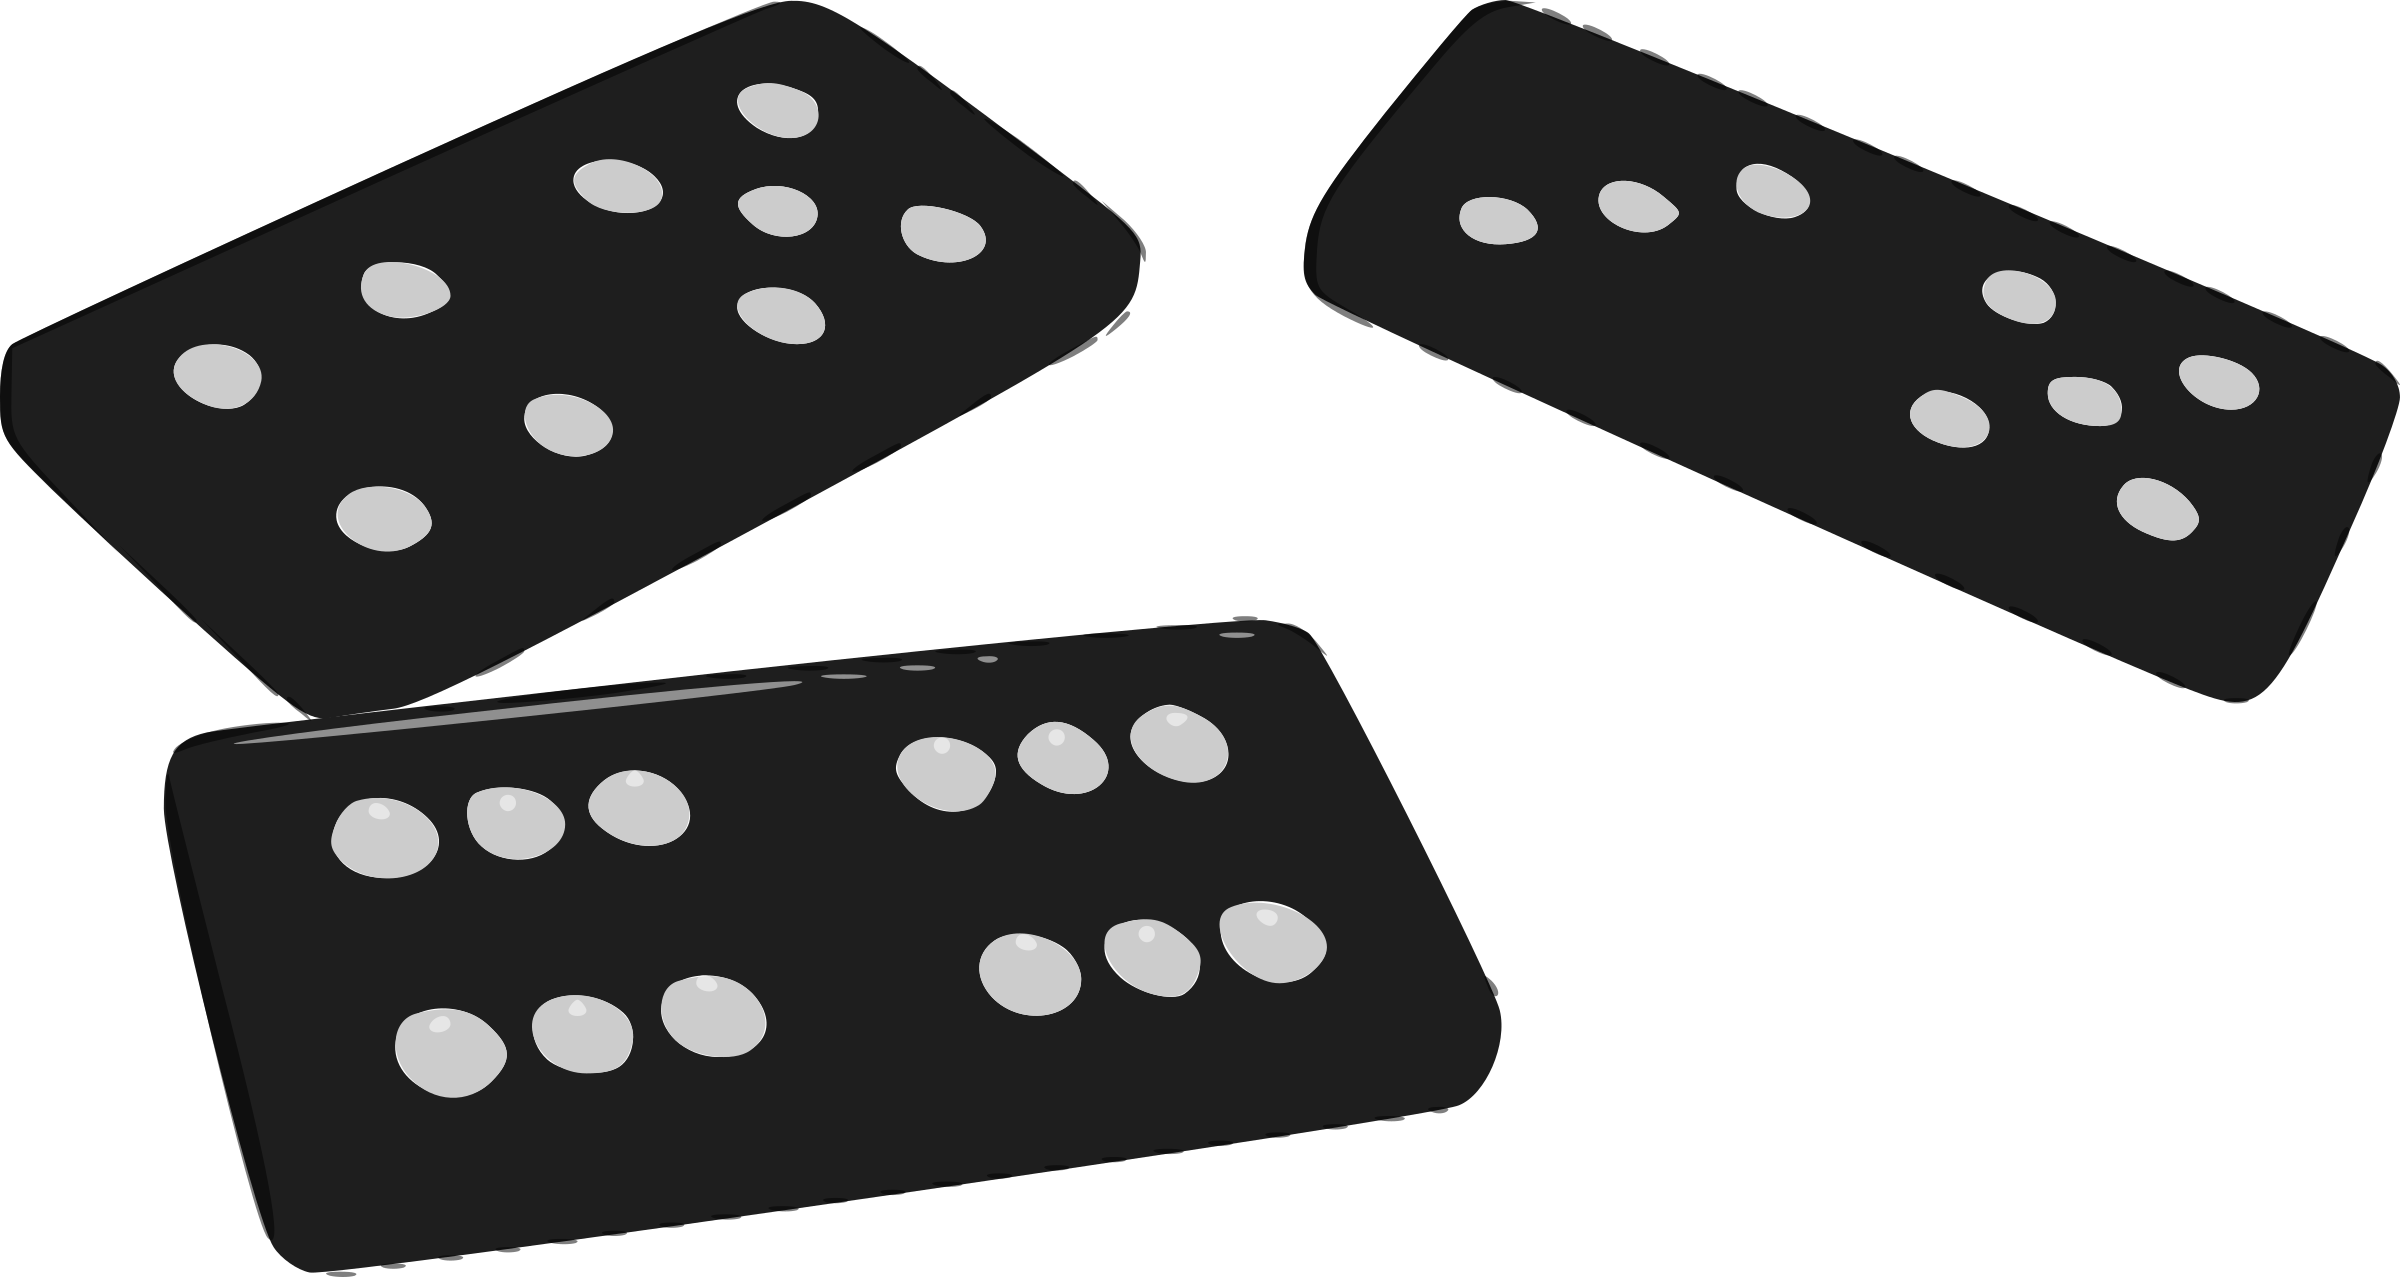 Dominoes by mazeo